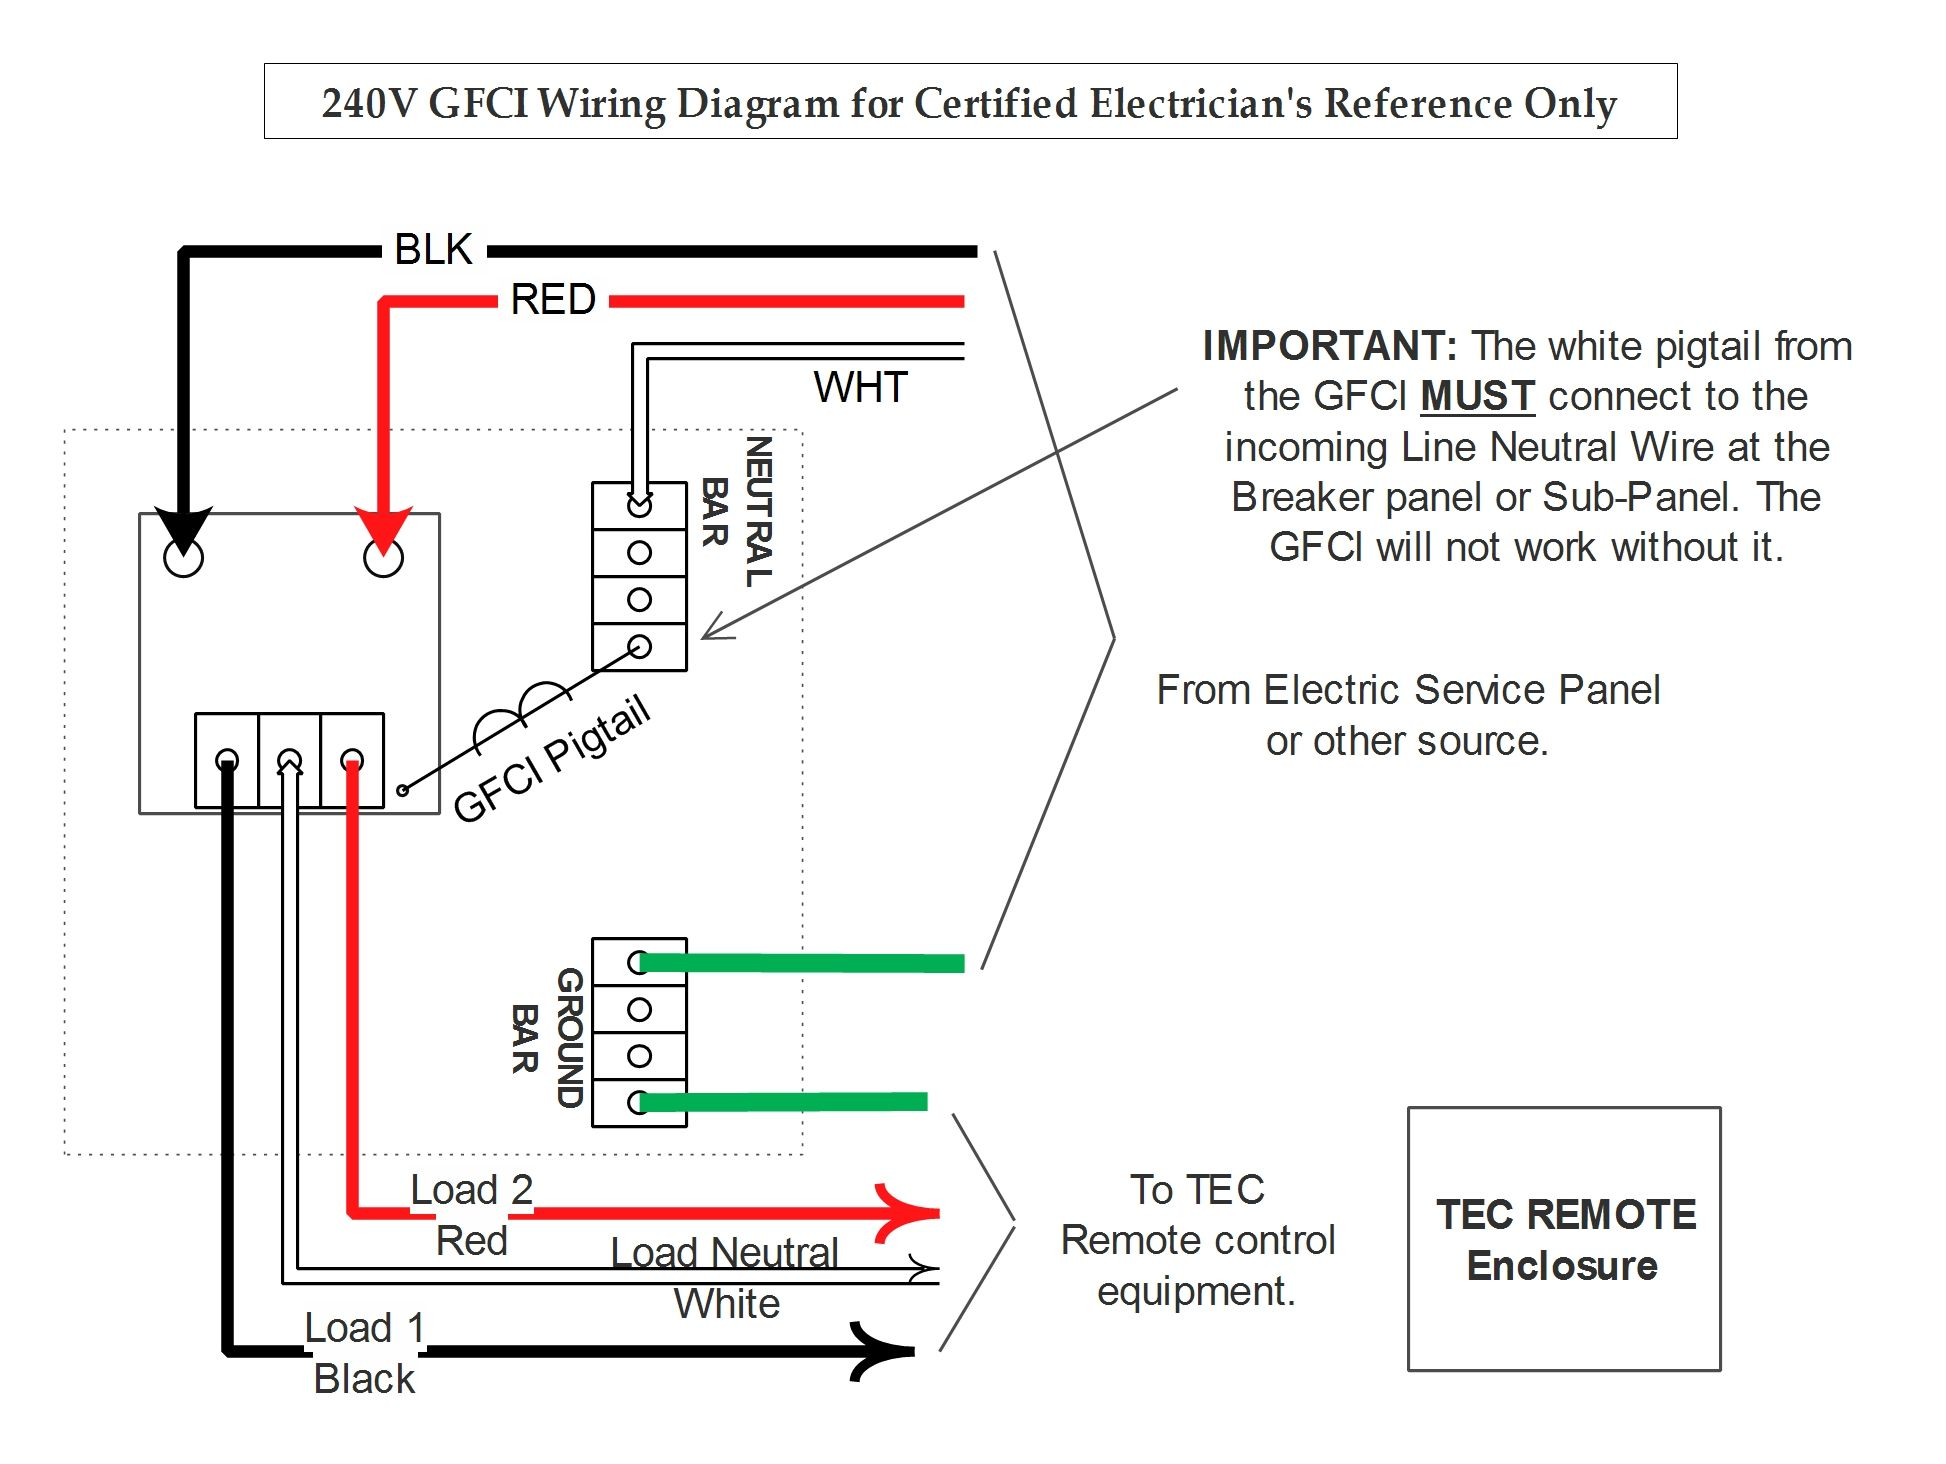 GFCI 240 Wiring wiring & installation c tec 800 series wiring diagram at soozxer.org